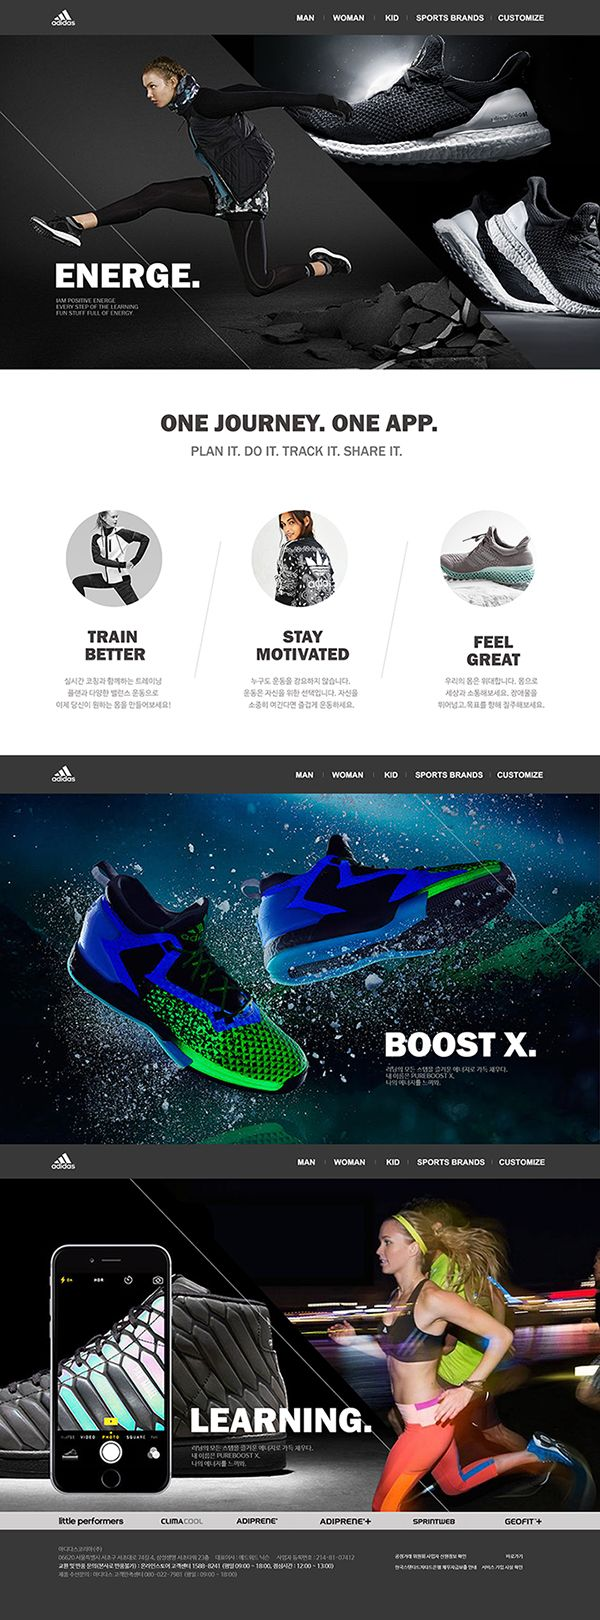 ADIDAS WEB DESIGN. Sport is dynamic. Photos can be just passed. I have more posts and diagonal.